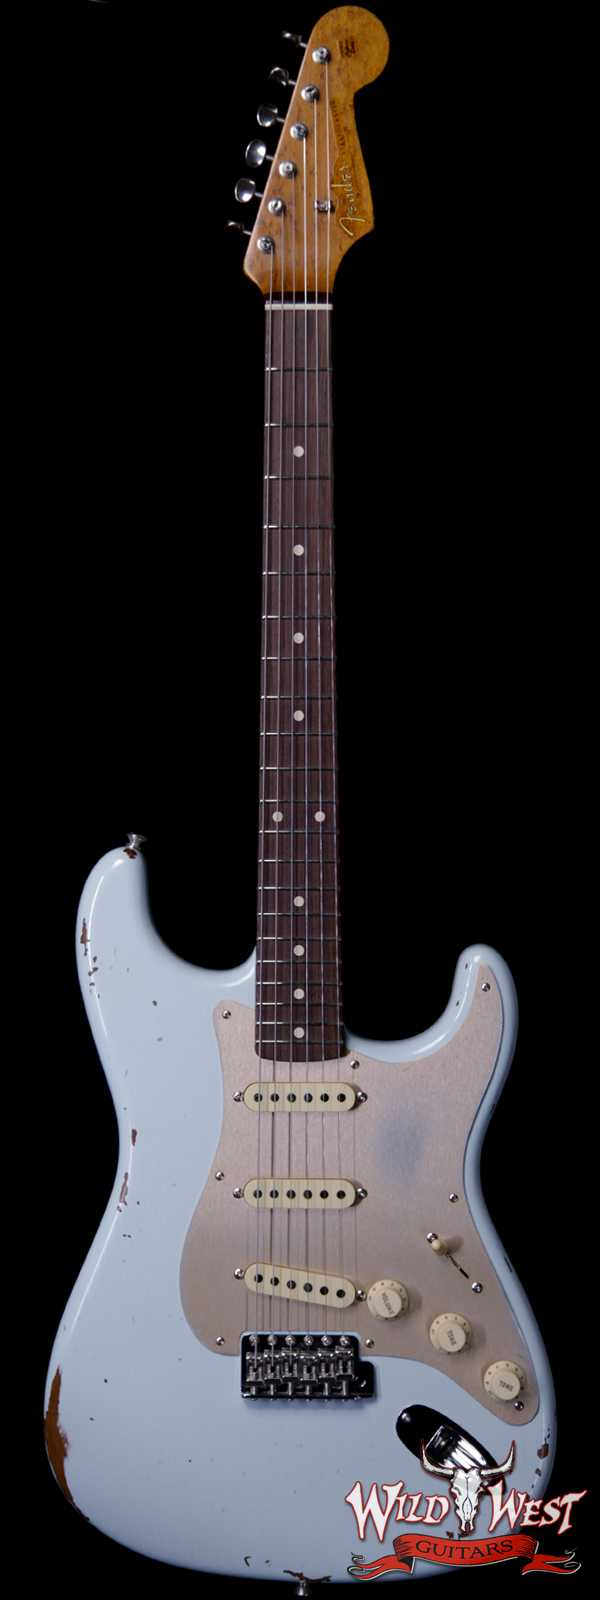 Fender Custom Shop 1960 Roasted Stratocaster Relic Birdseye Maple Neck AAA Rosewood Slab Board Sonic Blue